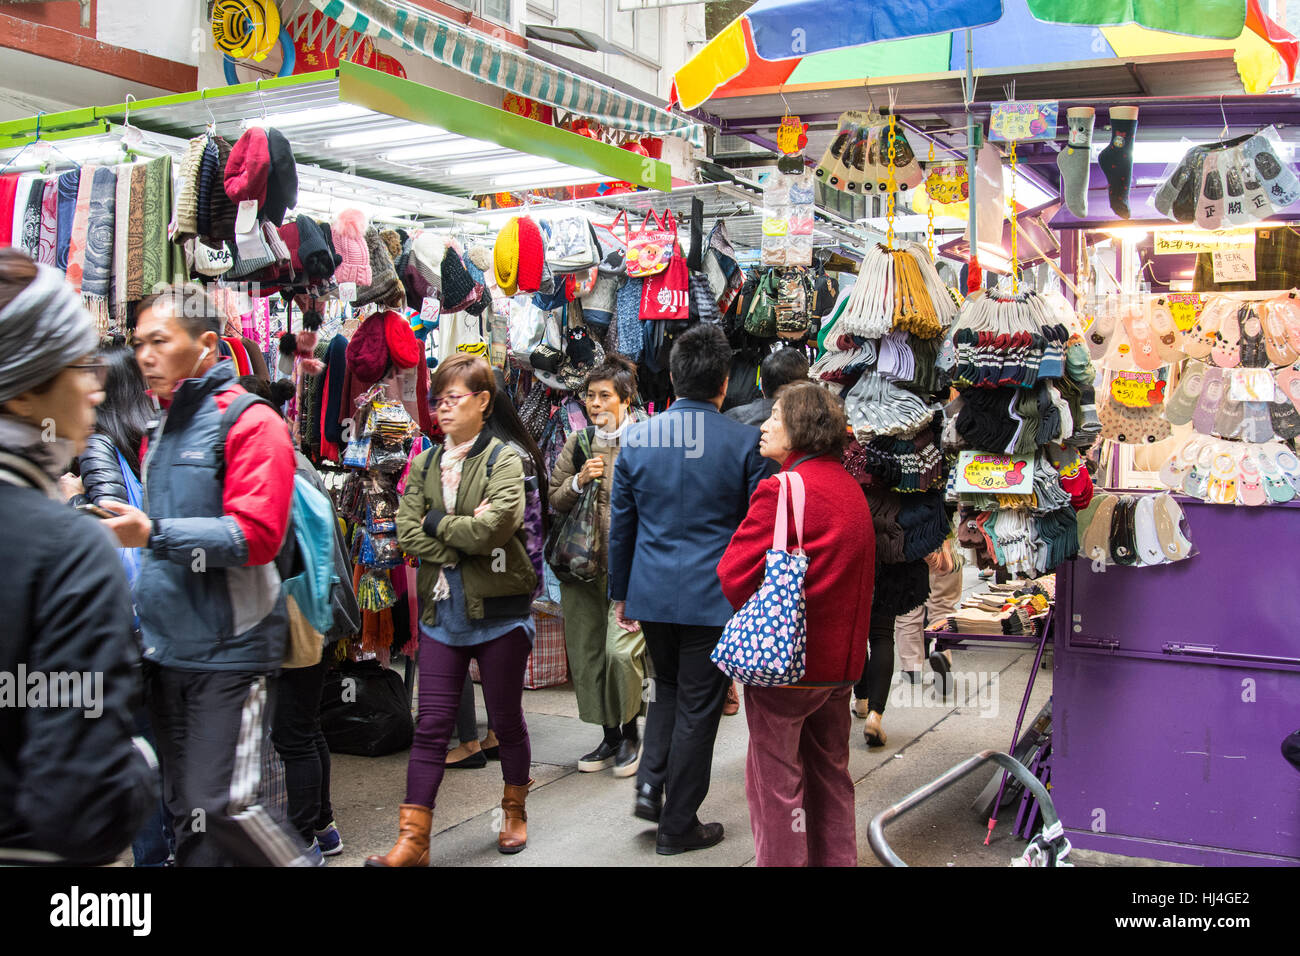 people in a popular market on the streets in Hong Kong - Stock Image